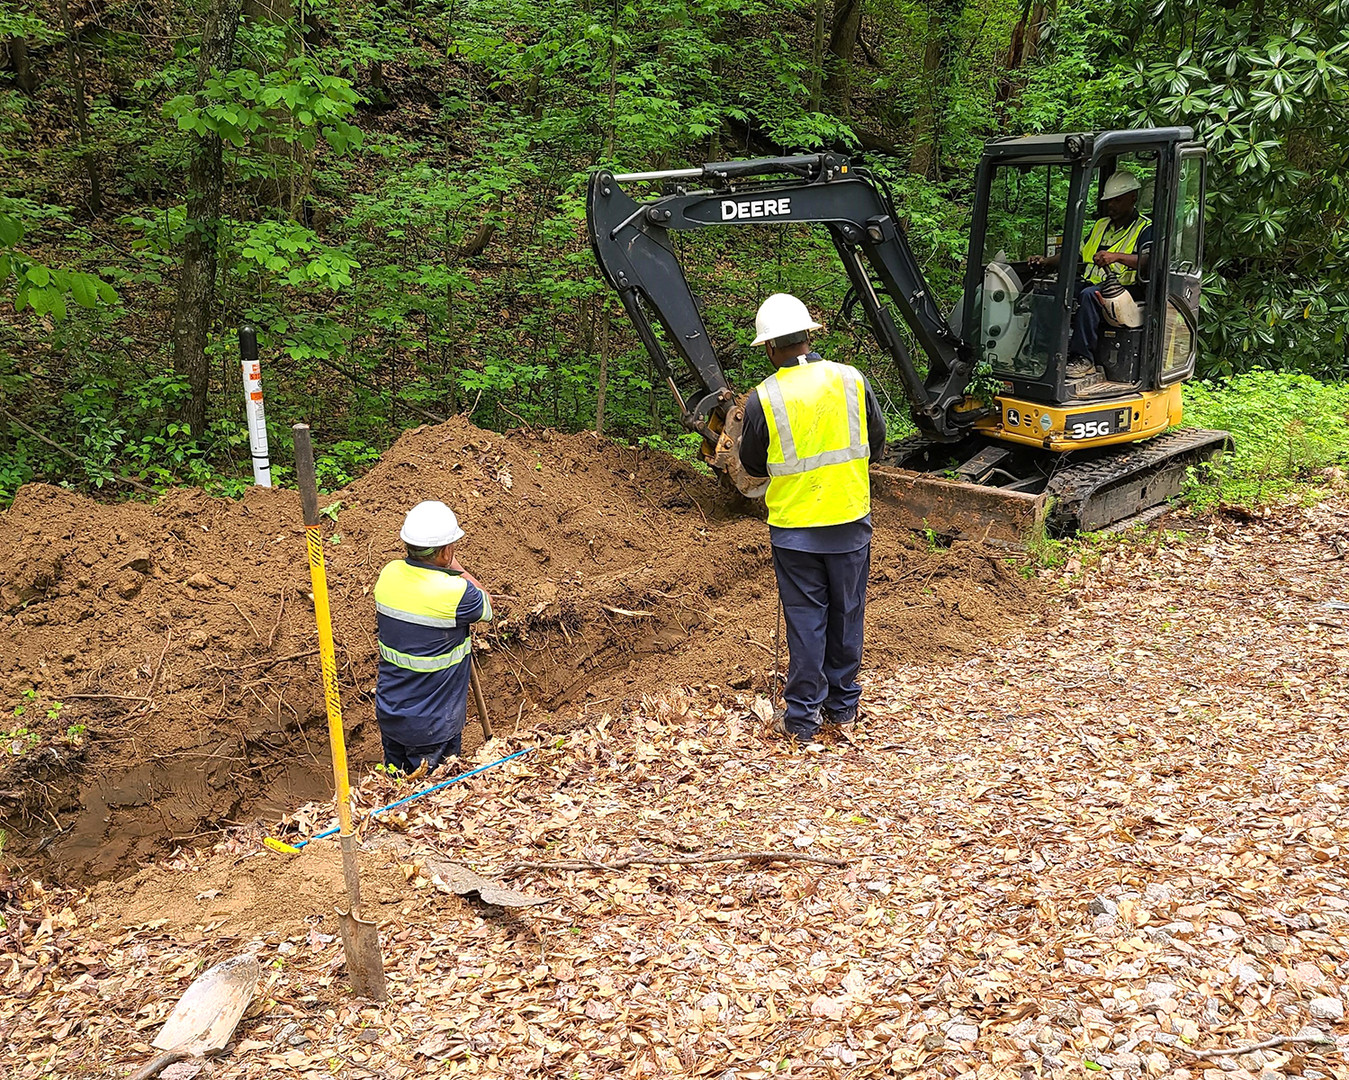 Men supervise mini excavator digging trench for underground cable construction